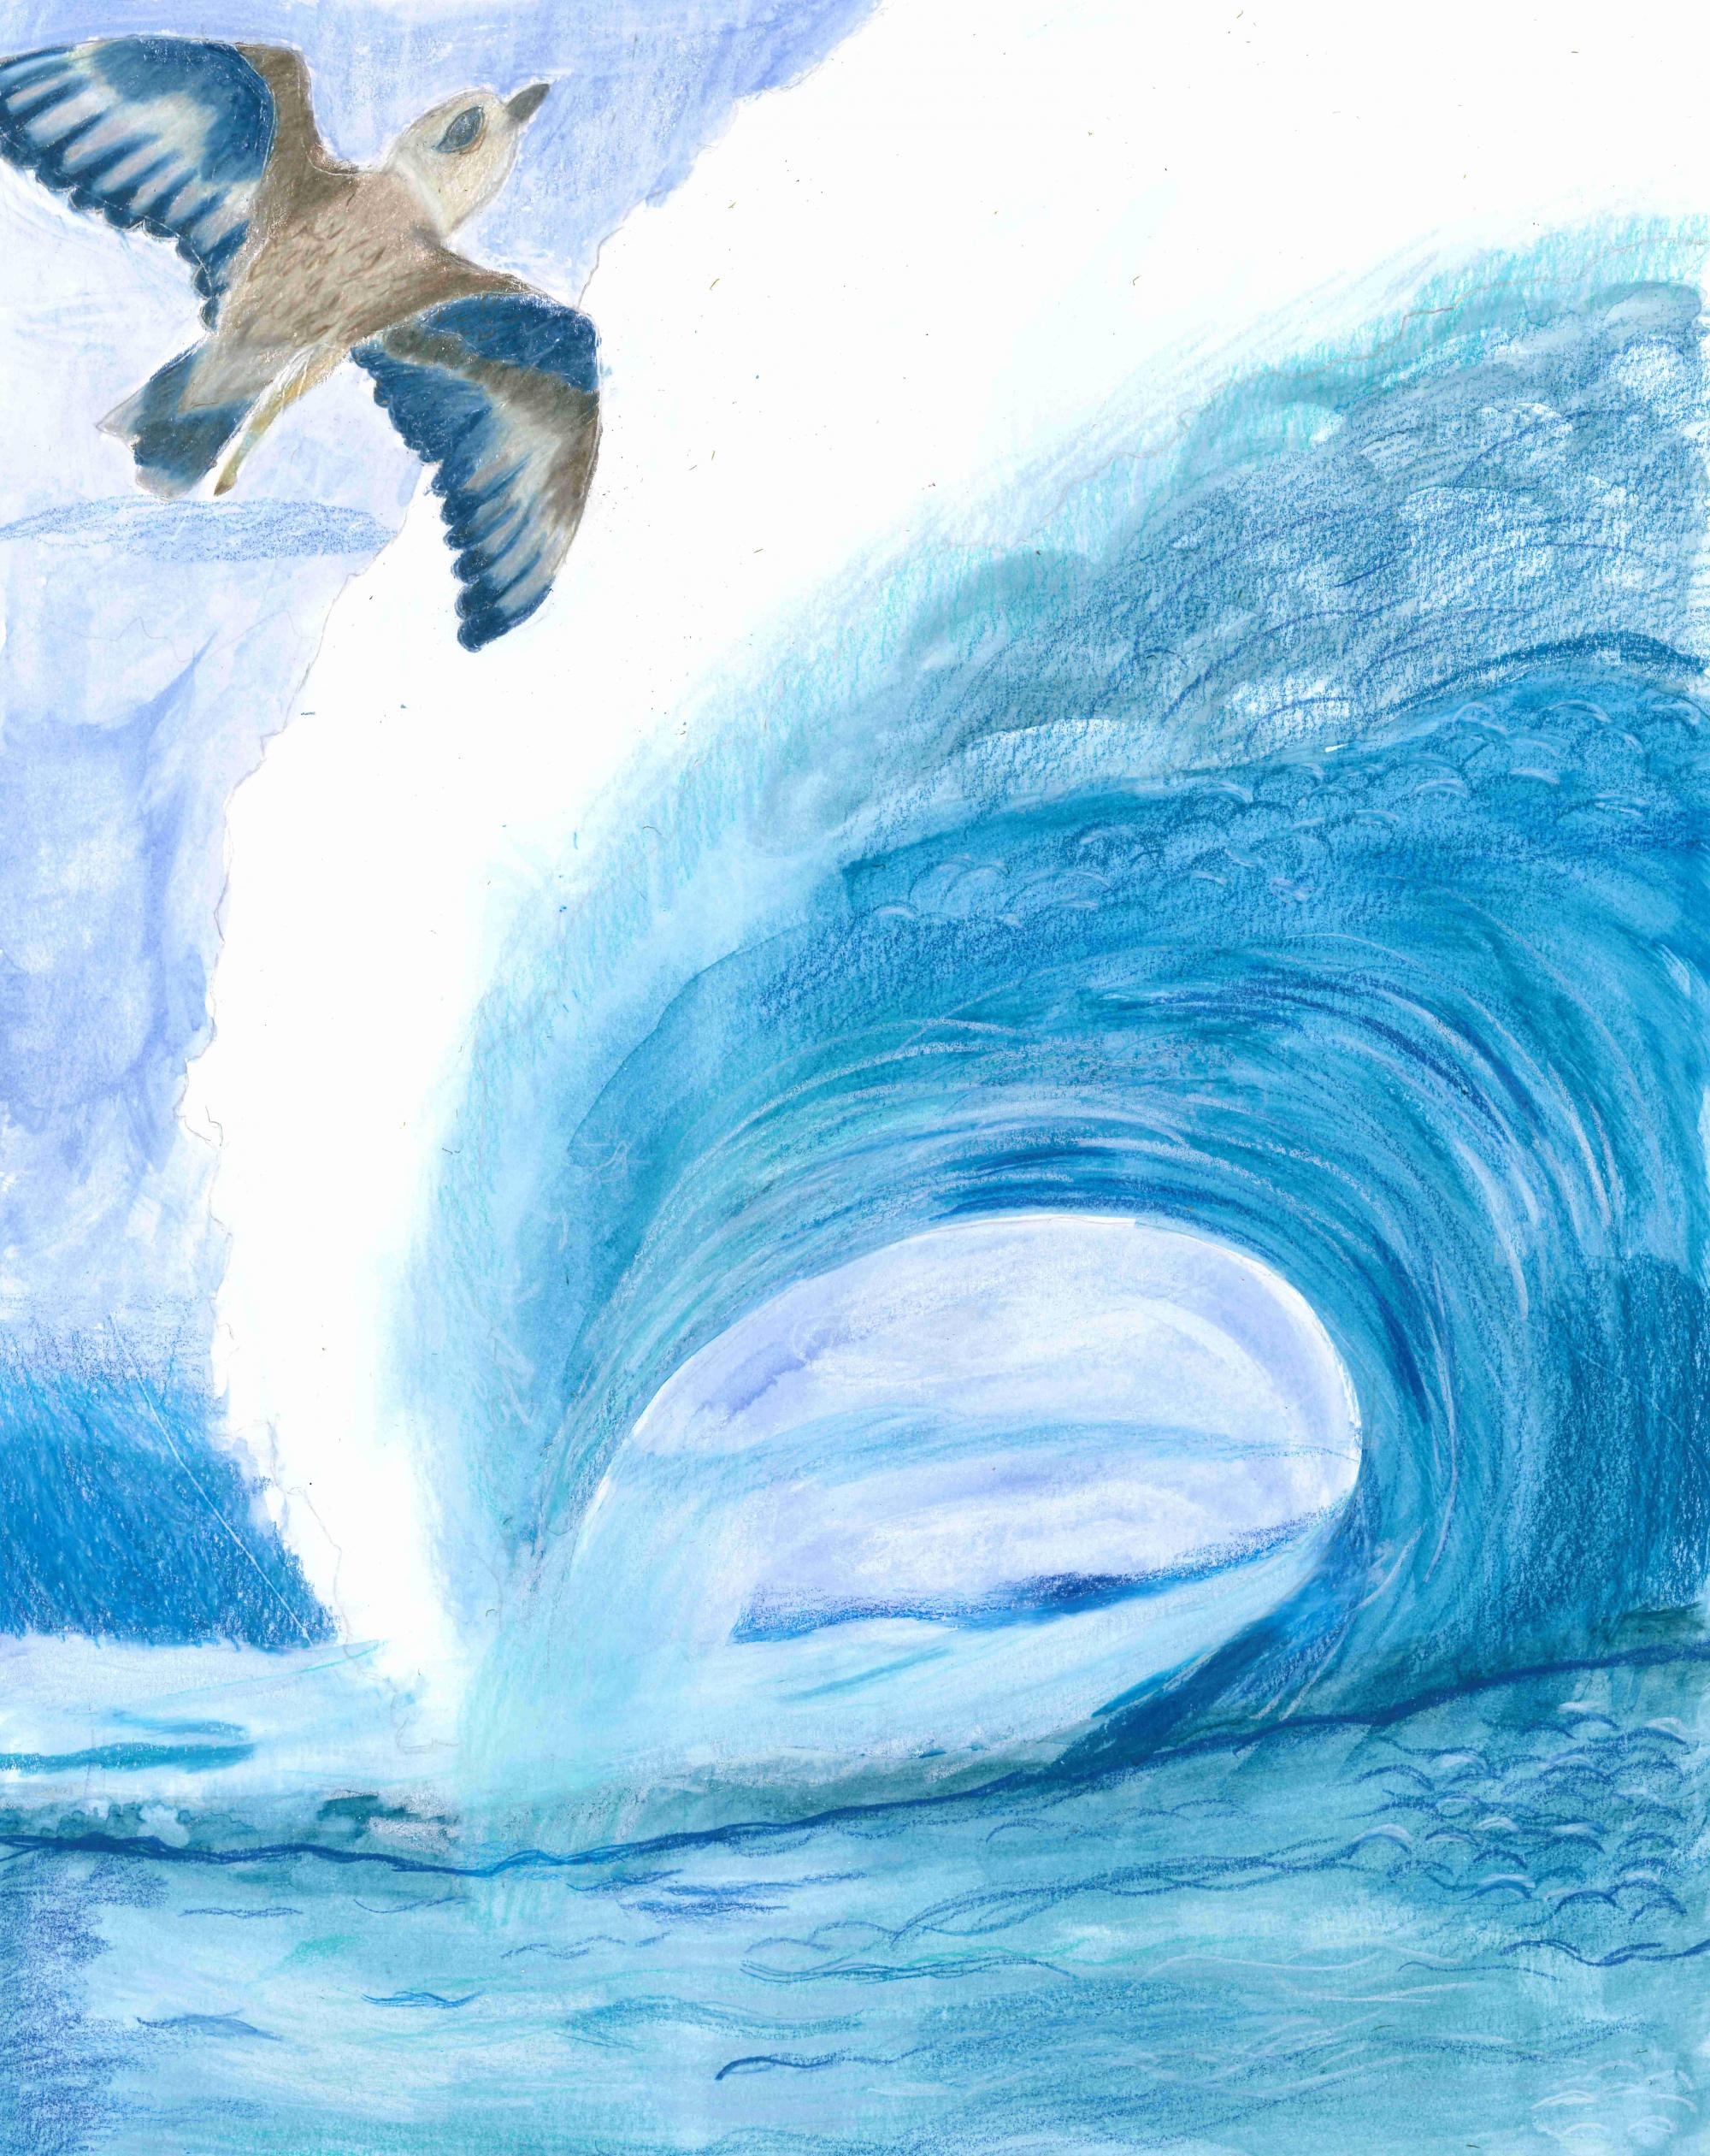 """Soaring Wave"" Sophia Xu, age 10. Westbury, New York. United States. Bowling Green Elementary School. River of Words 2018 Finalist."